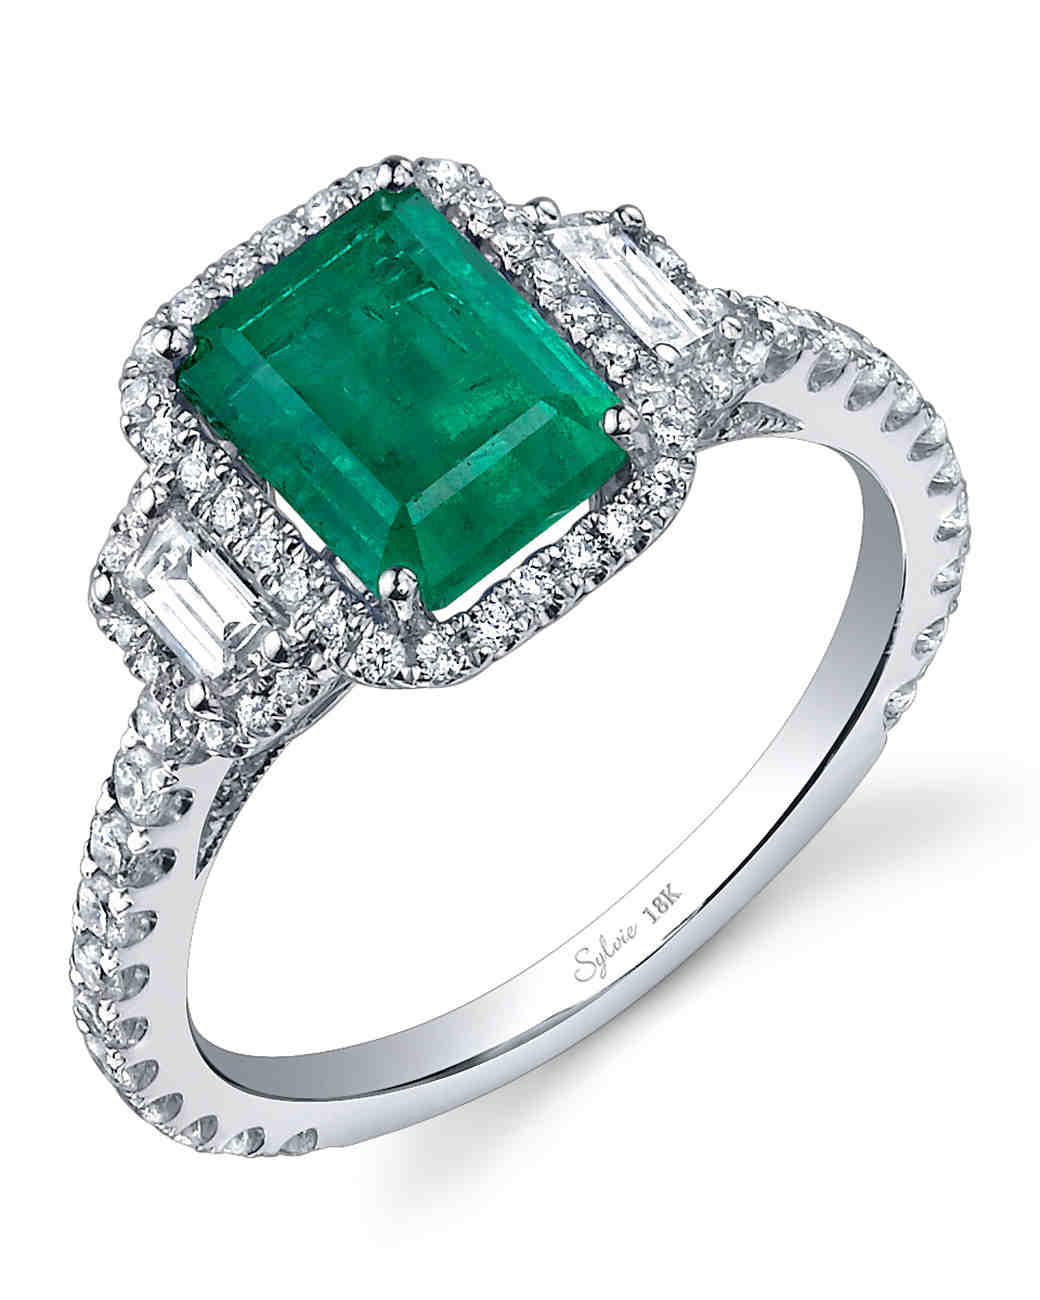 Examplary A Bride Martha Stewart Emerald Wedding Rings Women Emerald Wedding Rings Meaning Slyvie Collection Emerald Engagement Ring Emerald Engagement Rings wedding rings Emerald Wedding Rings